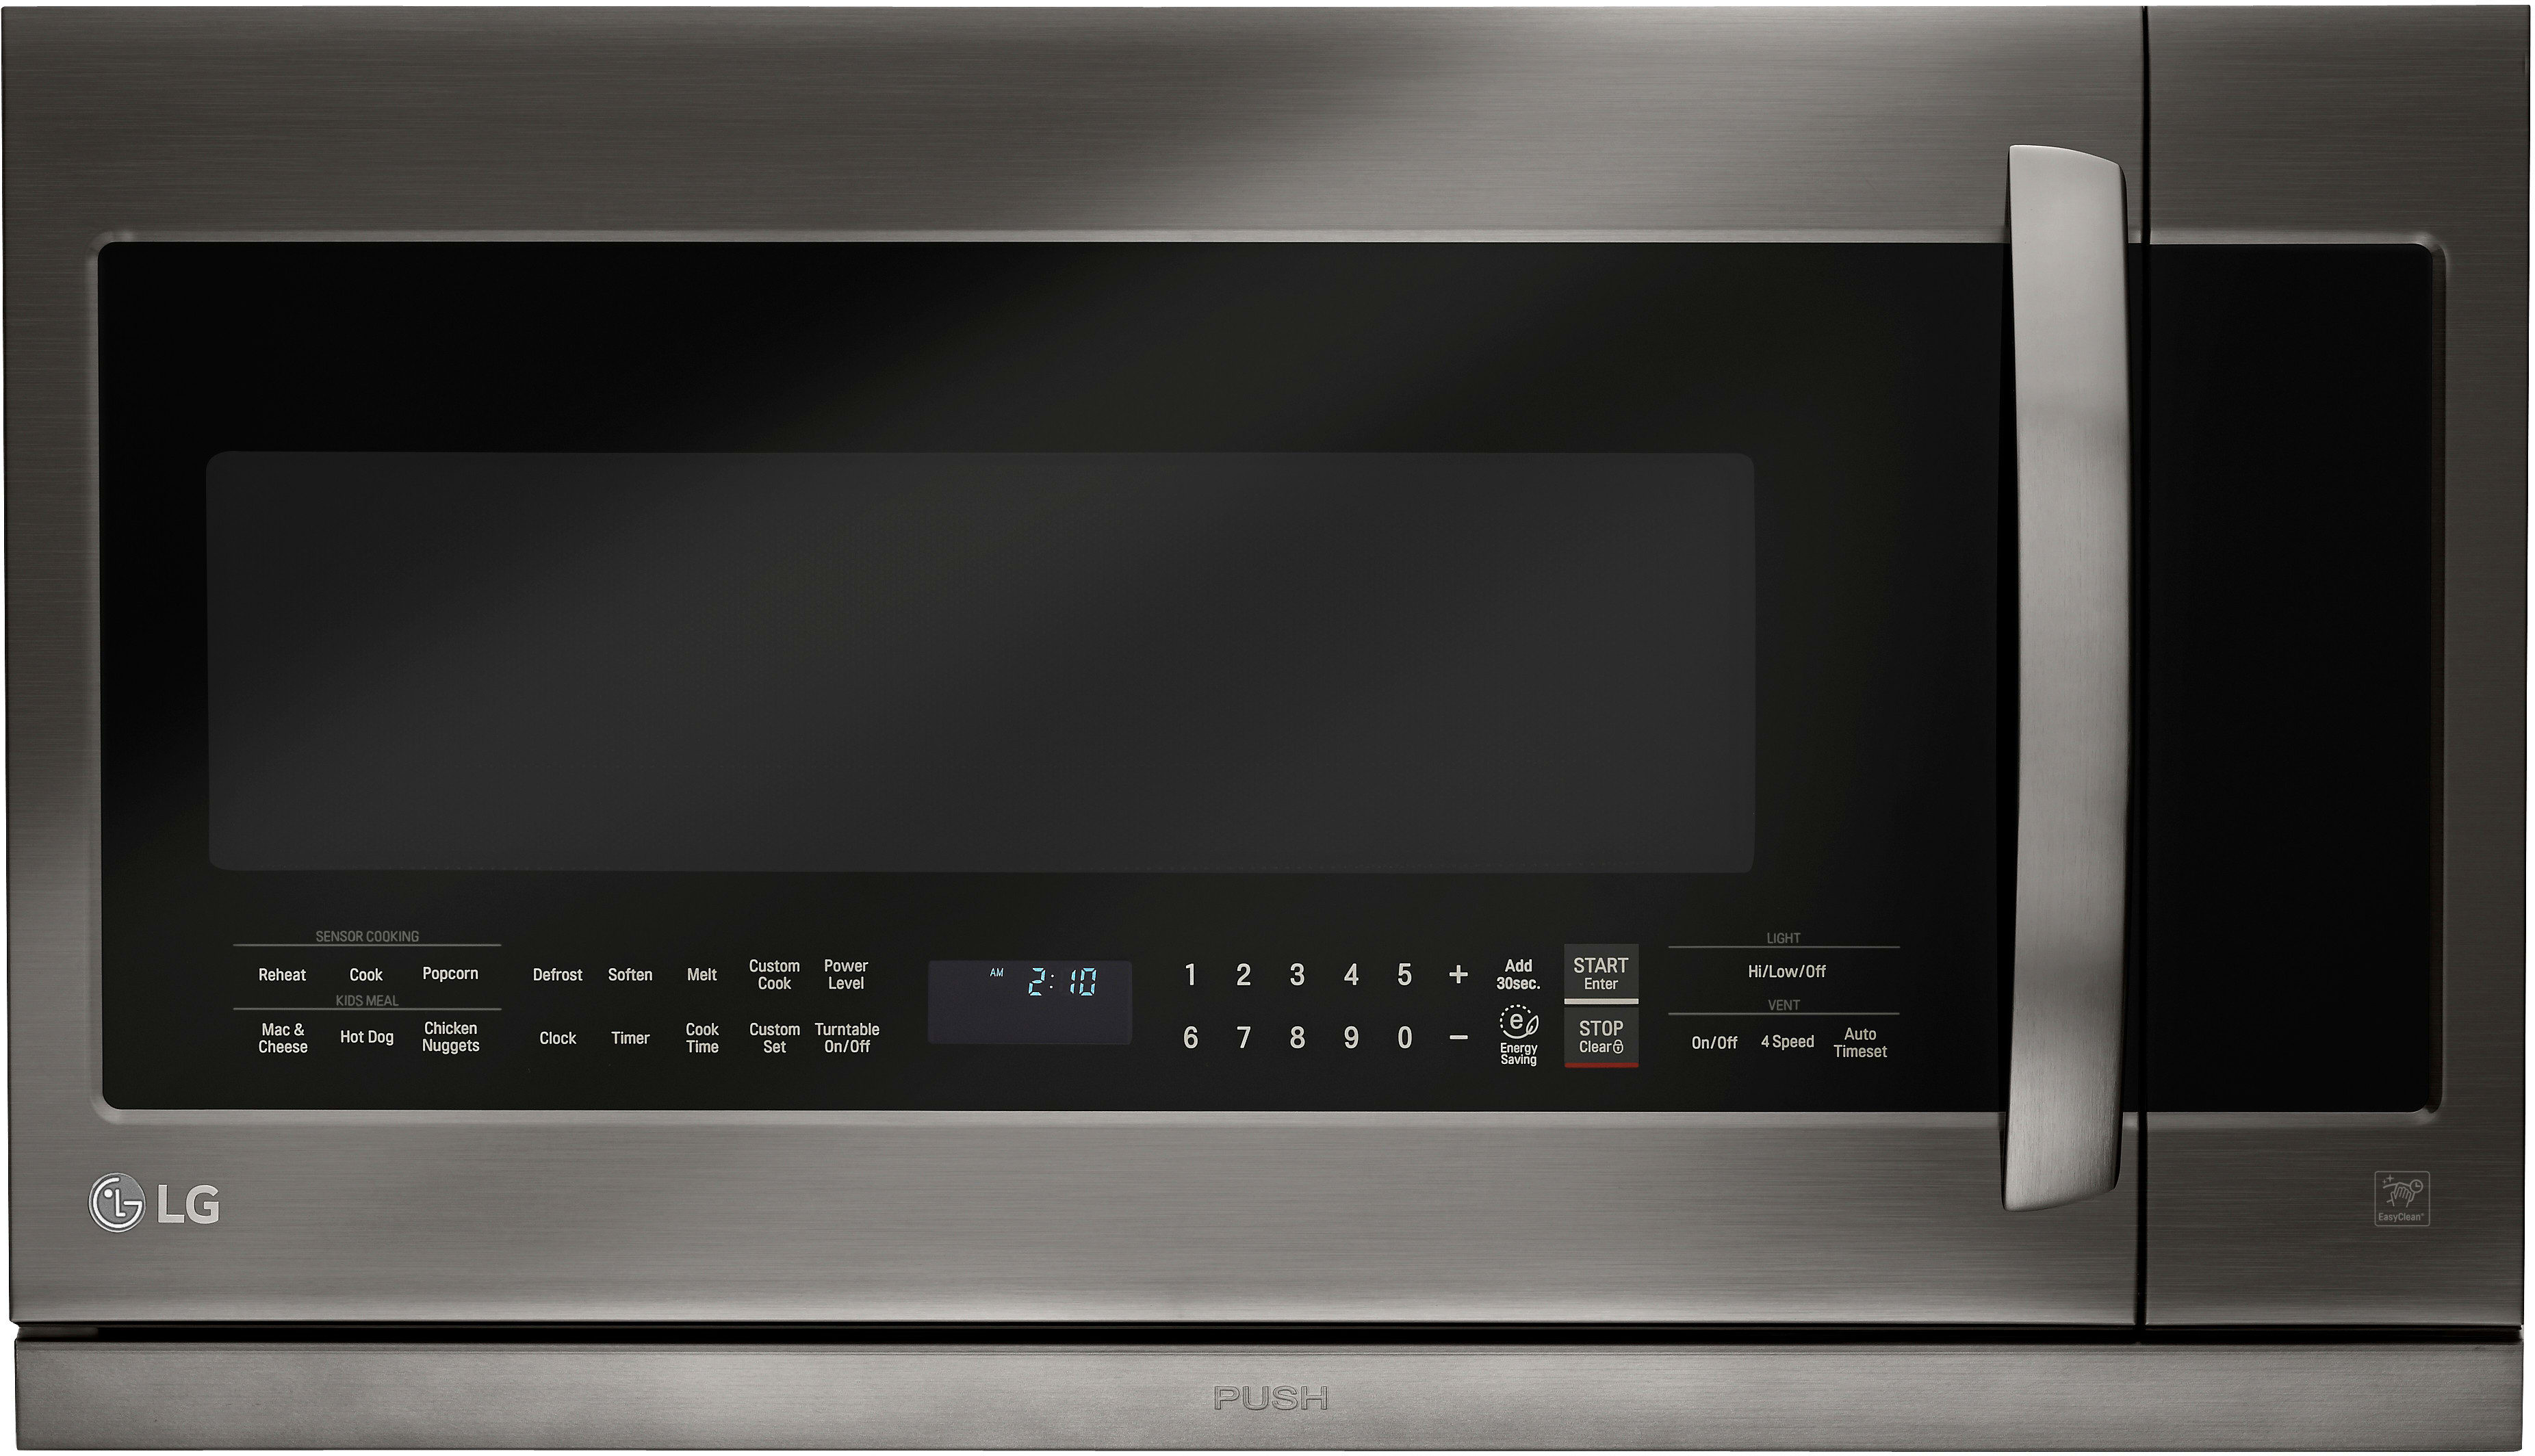 Lg Lmhm2237bd 2 2 Cu Ft Over The Range Microwave Oven